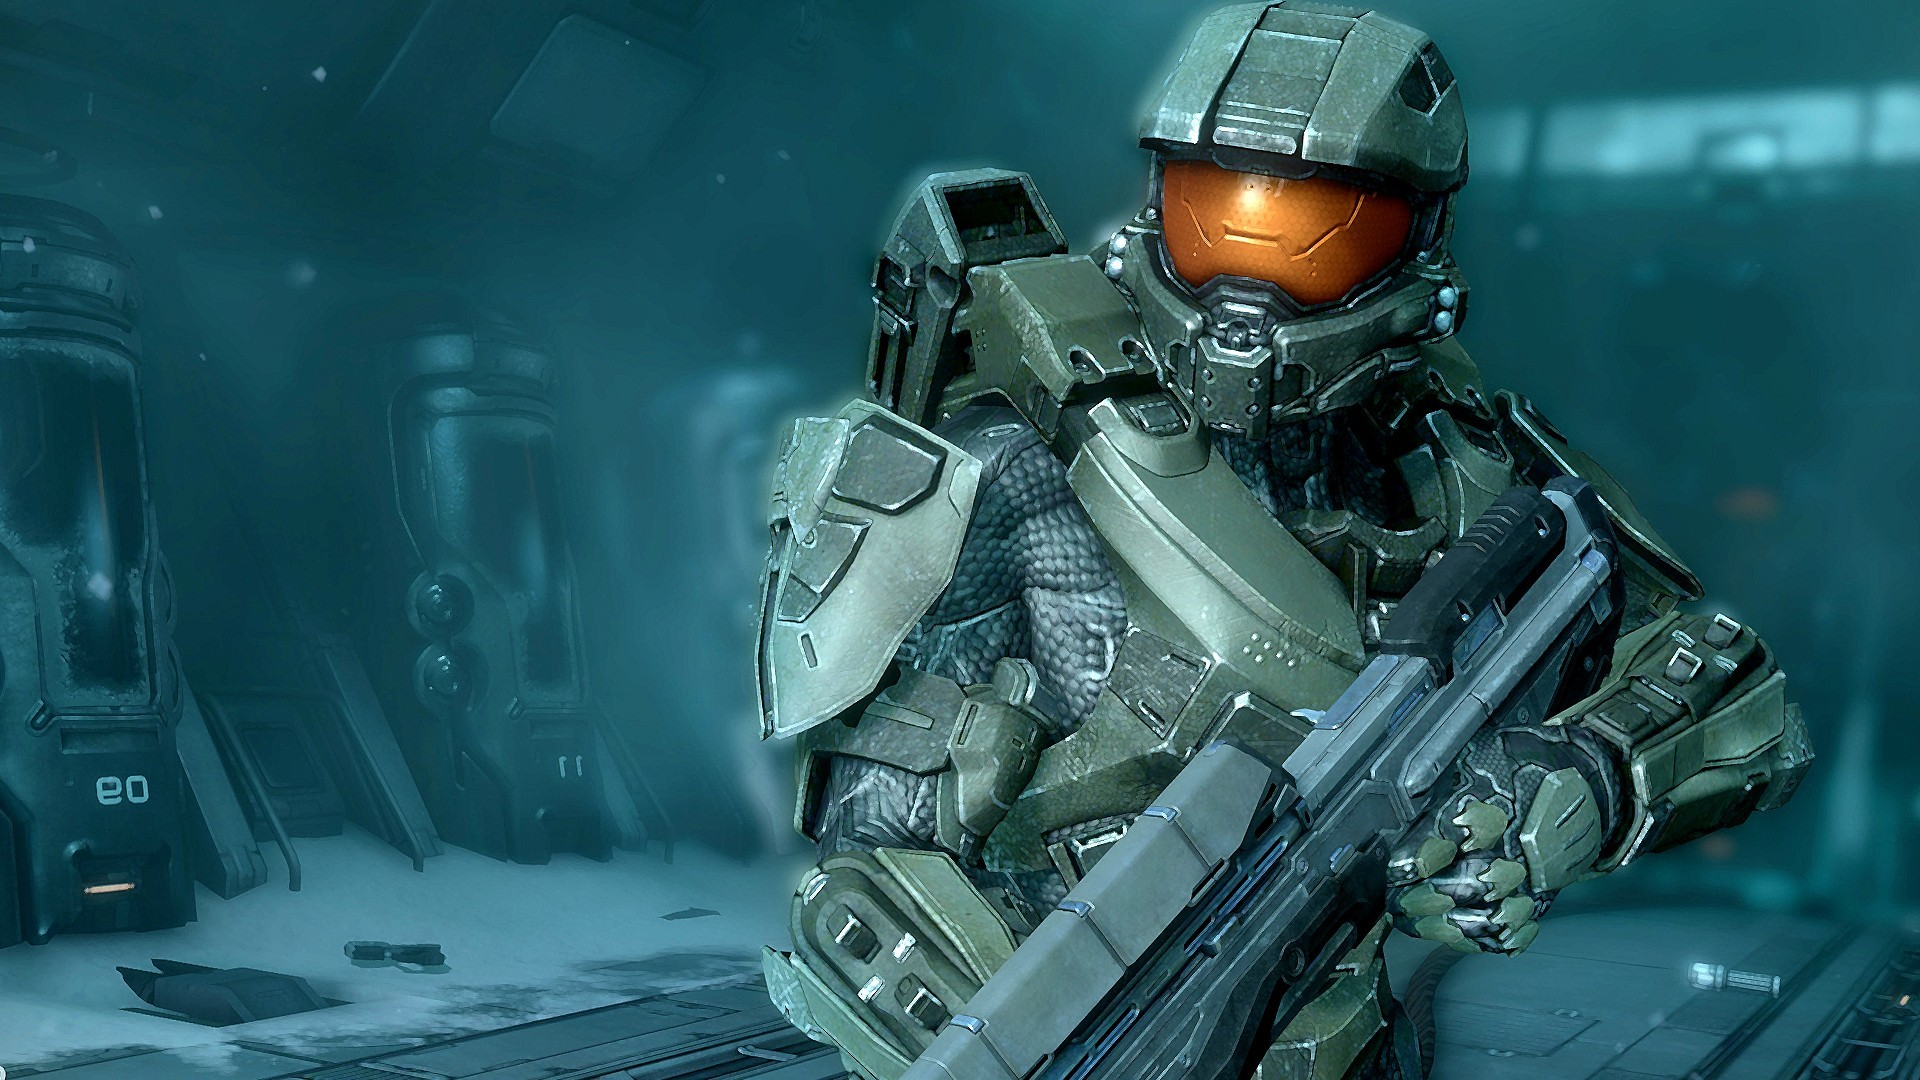 Video Games Master Chief Halo 4 Wallpaper Halo 4 Master Chief